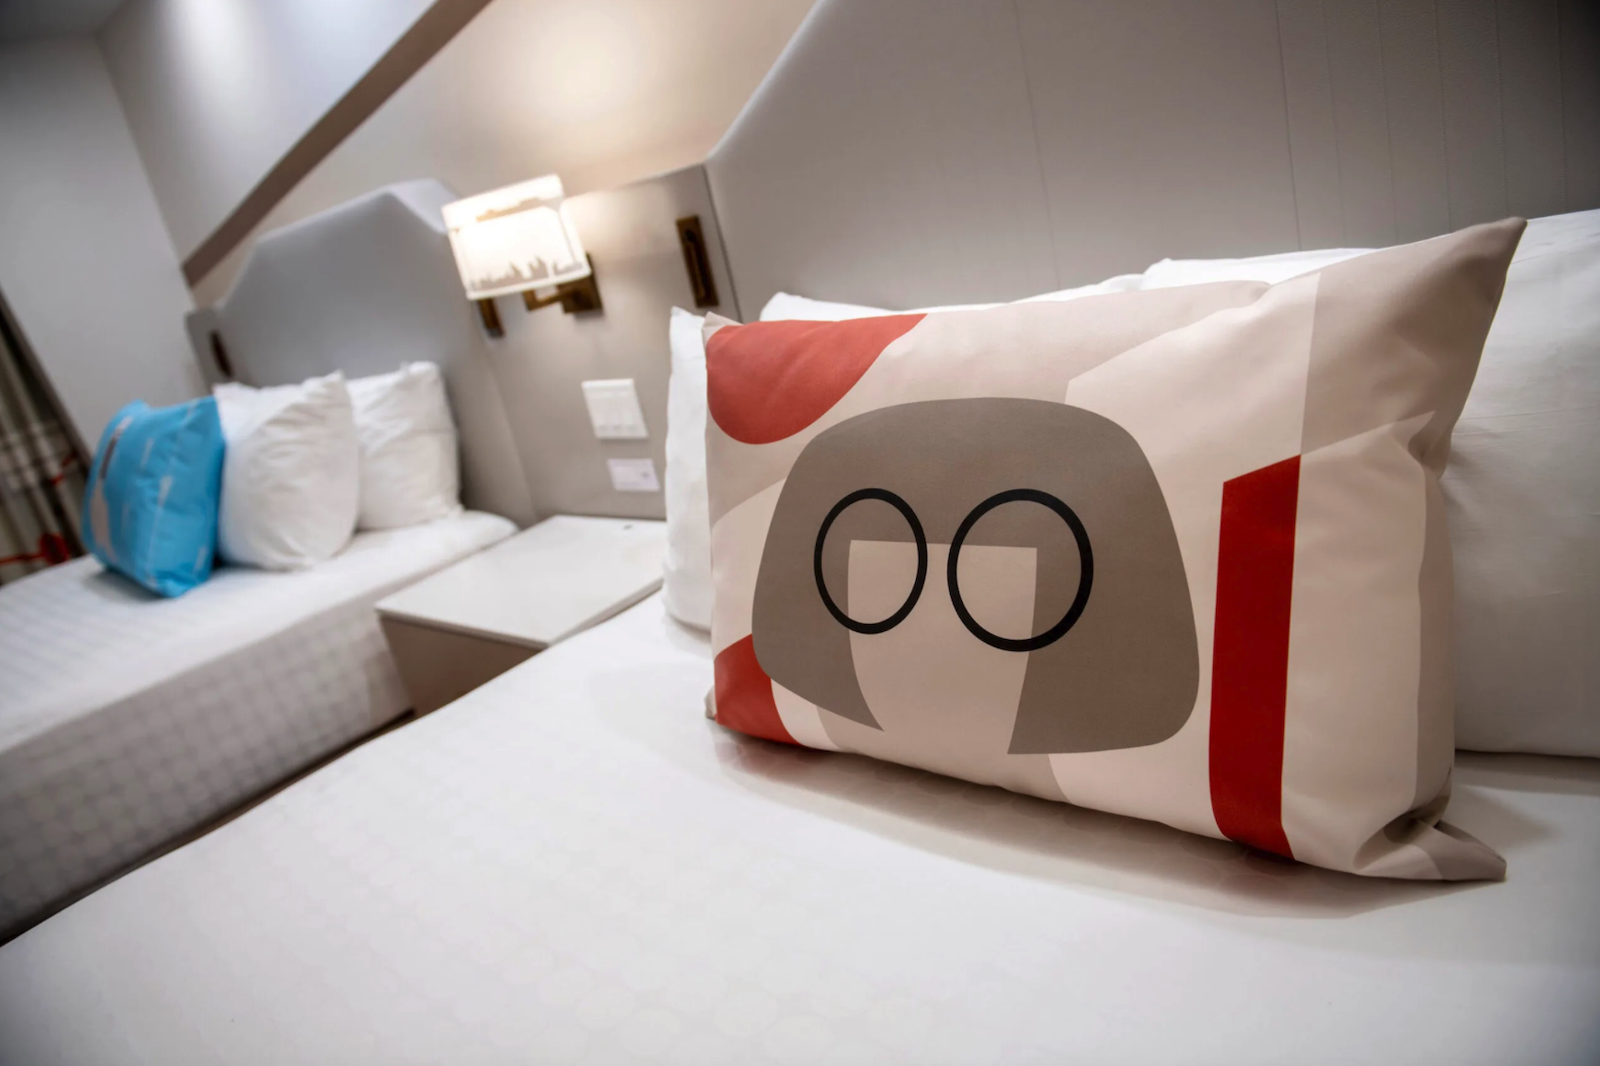 Disney's Contemporary Resort guest rooms get an 'Incredible' makeover - The Points Guy